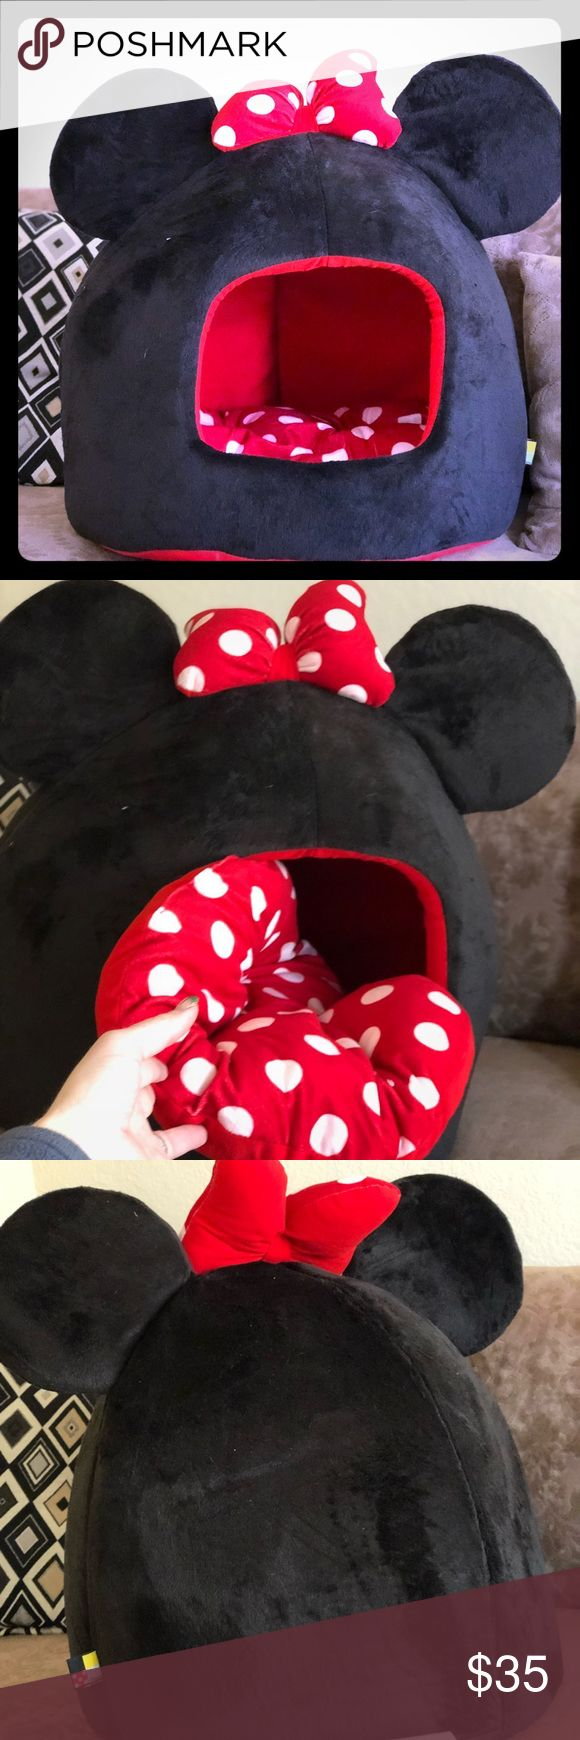 Minnie Mouse Dome Pet Bed The Minnie Mouse Pet Dome provides 360° of coverage to help your furry loved one feel safe and secure. The bed is made with a durable and flexible foam construction. The generously filled cushion is also reversible, with one side printed with a polka dots, and the other side solid red. The bottom of the bed is made with tough waterproof oxford fabric that will prevent any accidental messes from reaching your floor. The exterior of the bed is made with premium…